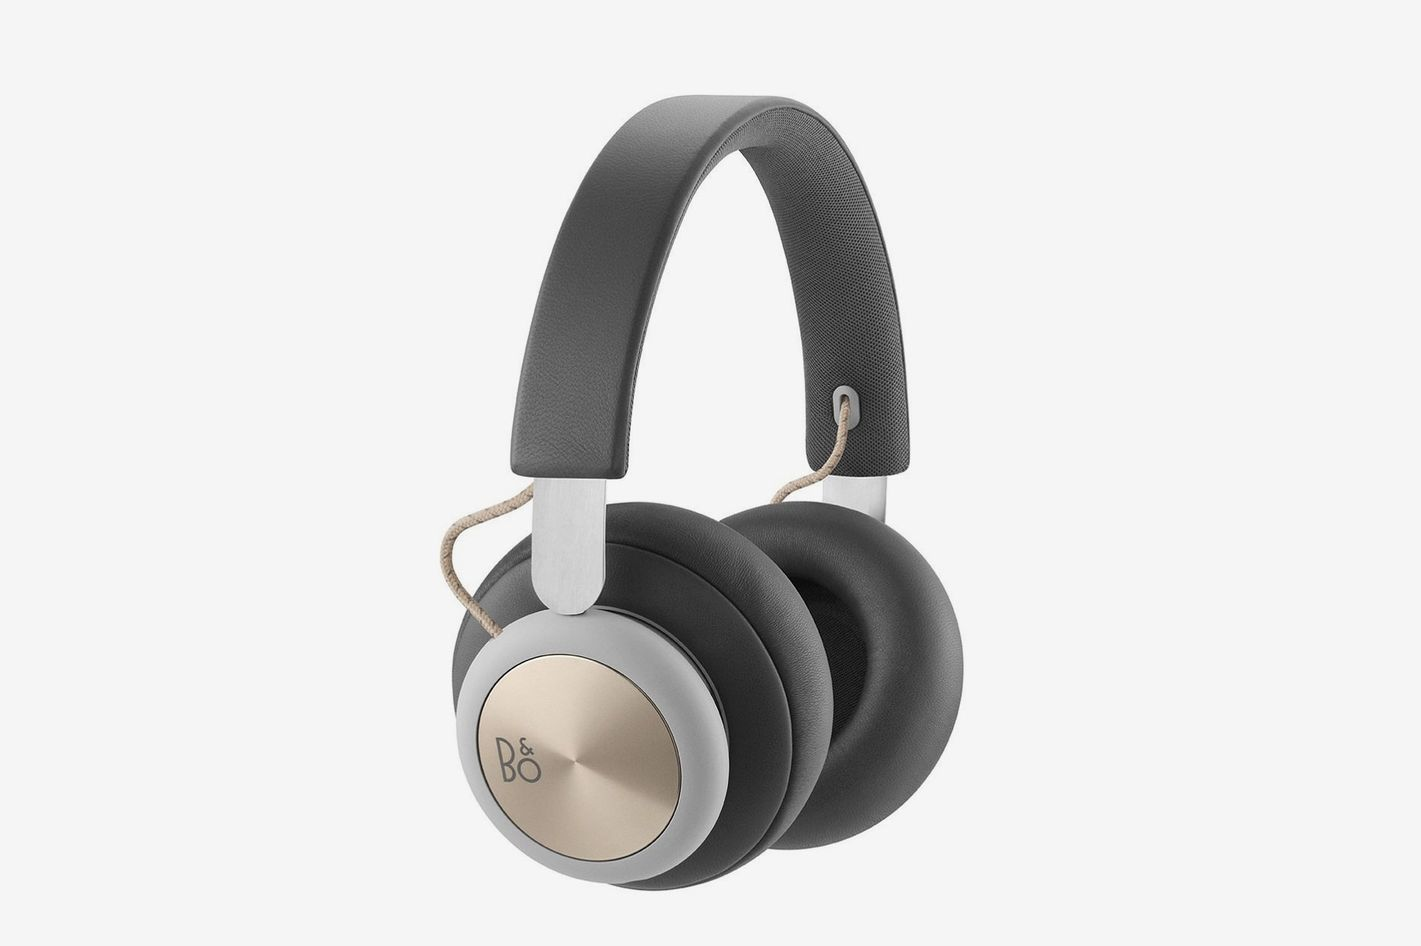 Jbl headphones wireless 710 - wireless headphones jbl